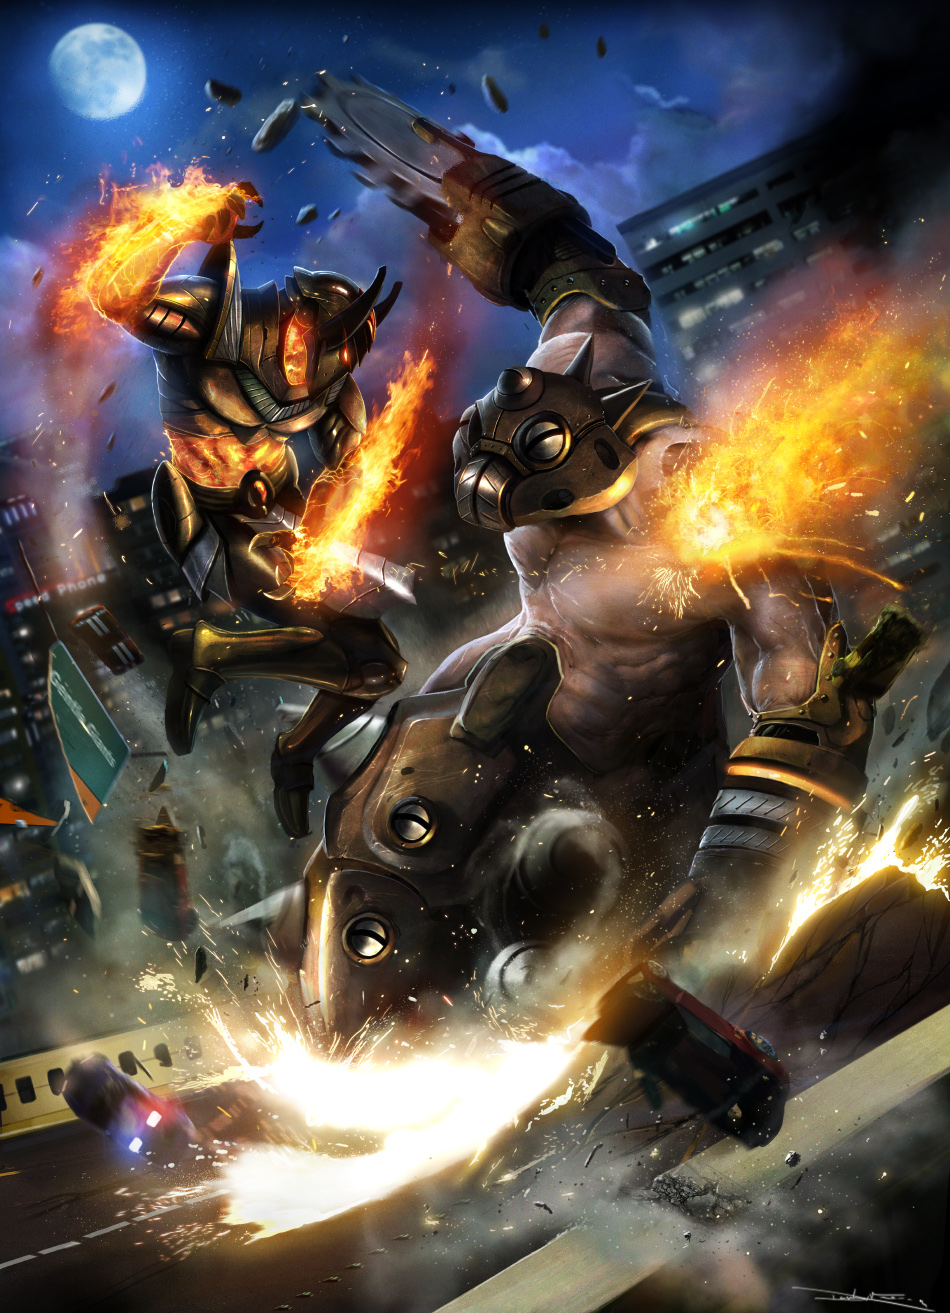 Fire God vs Mole Man -